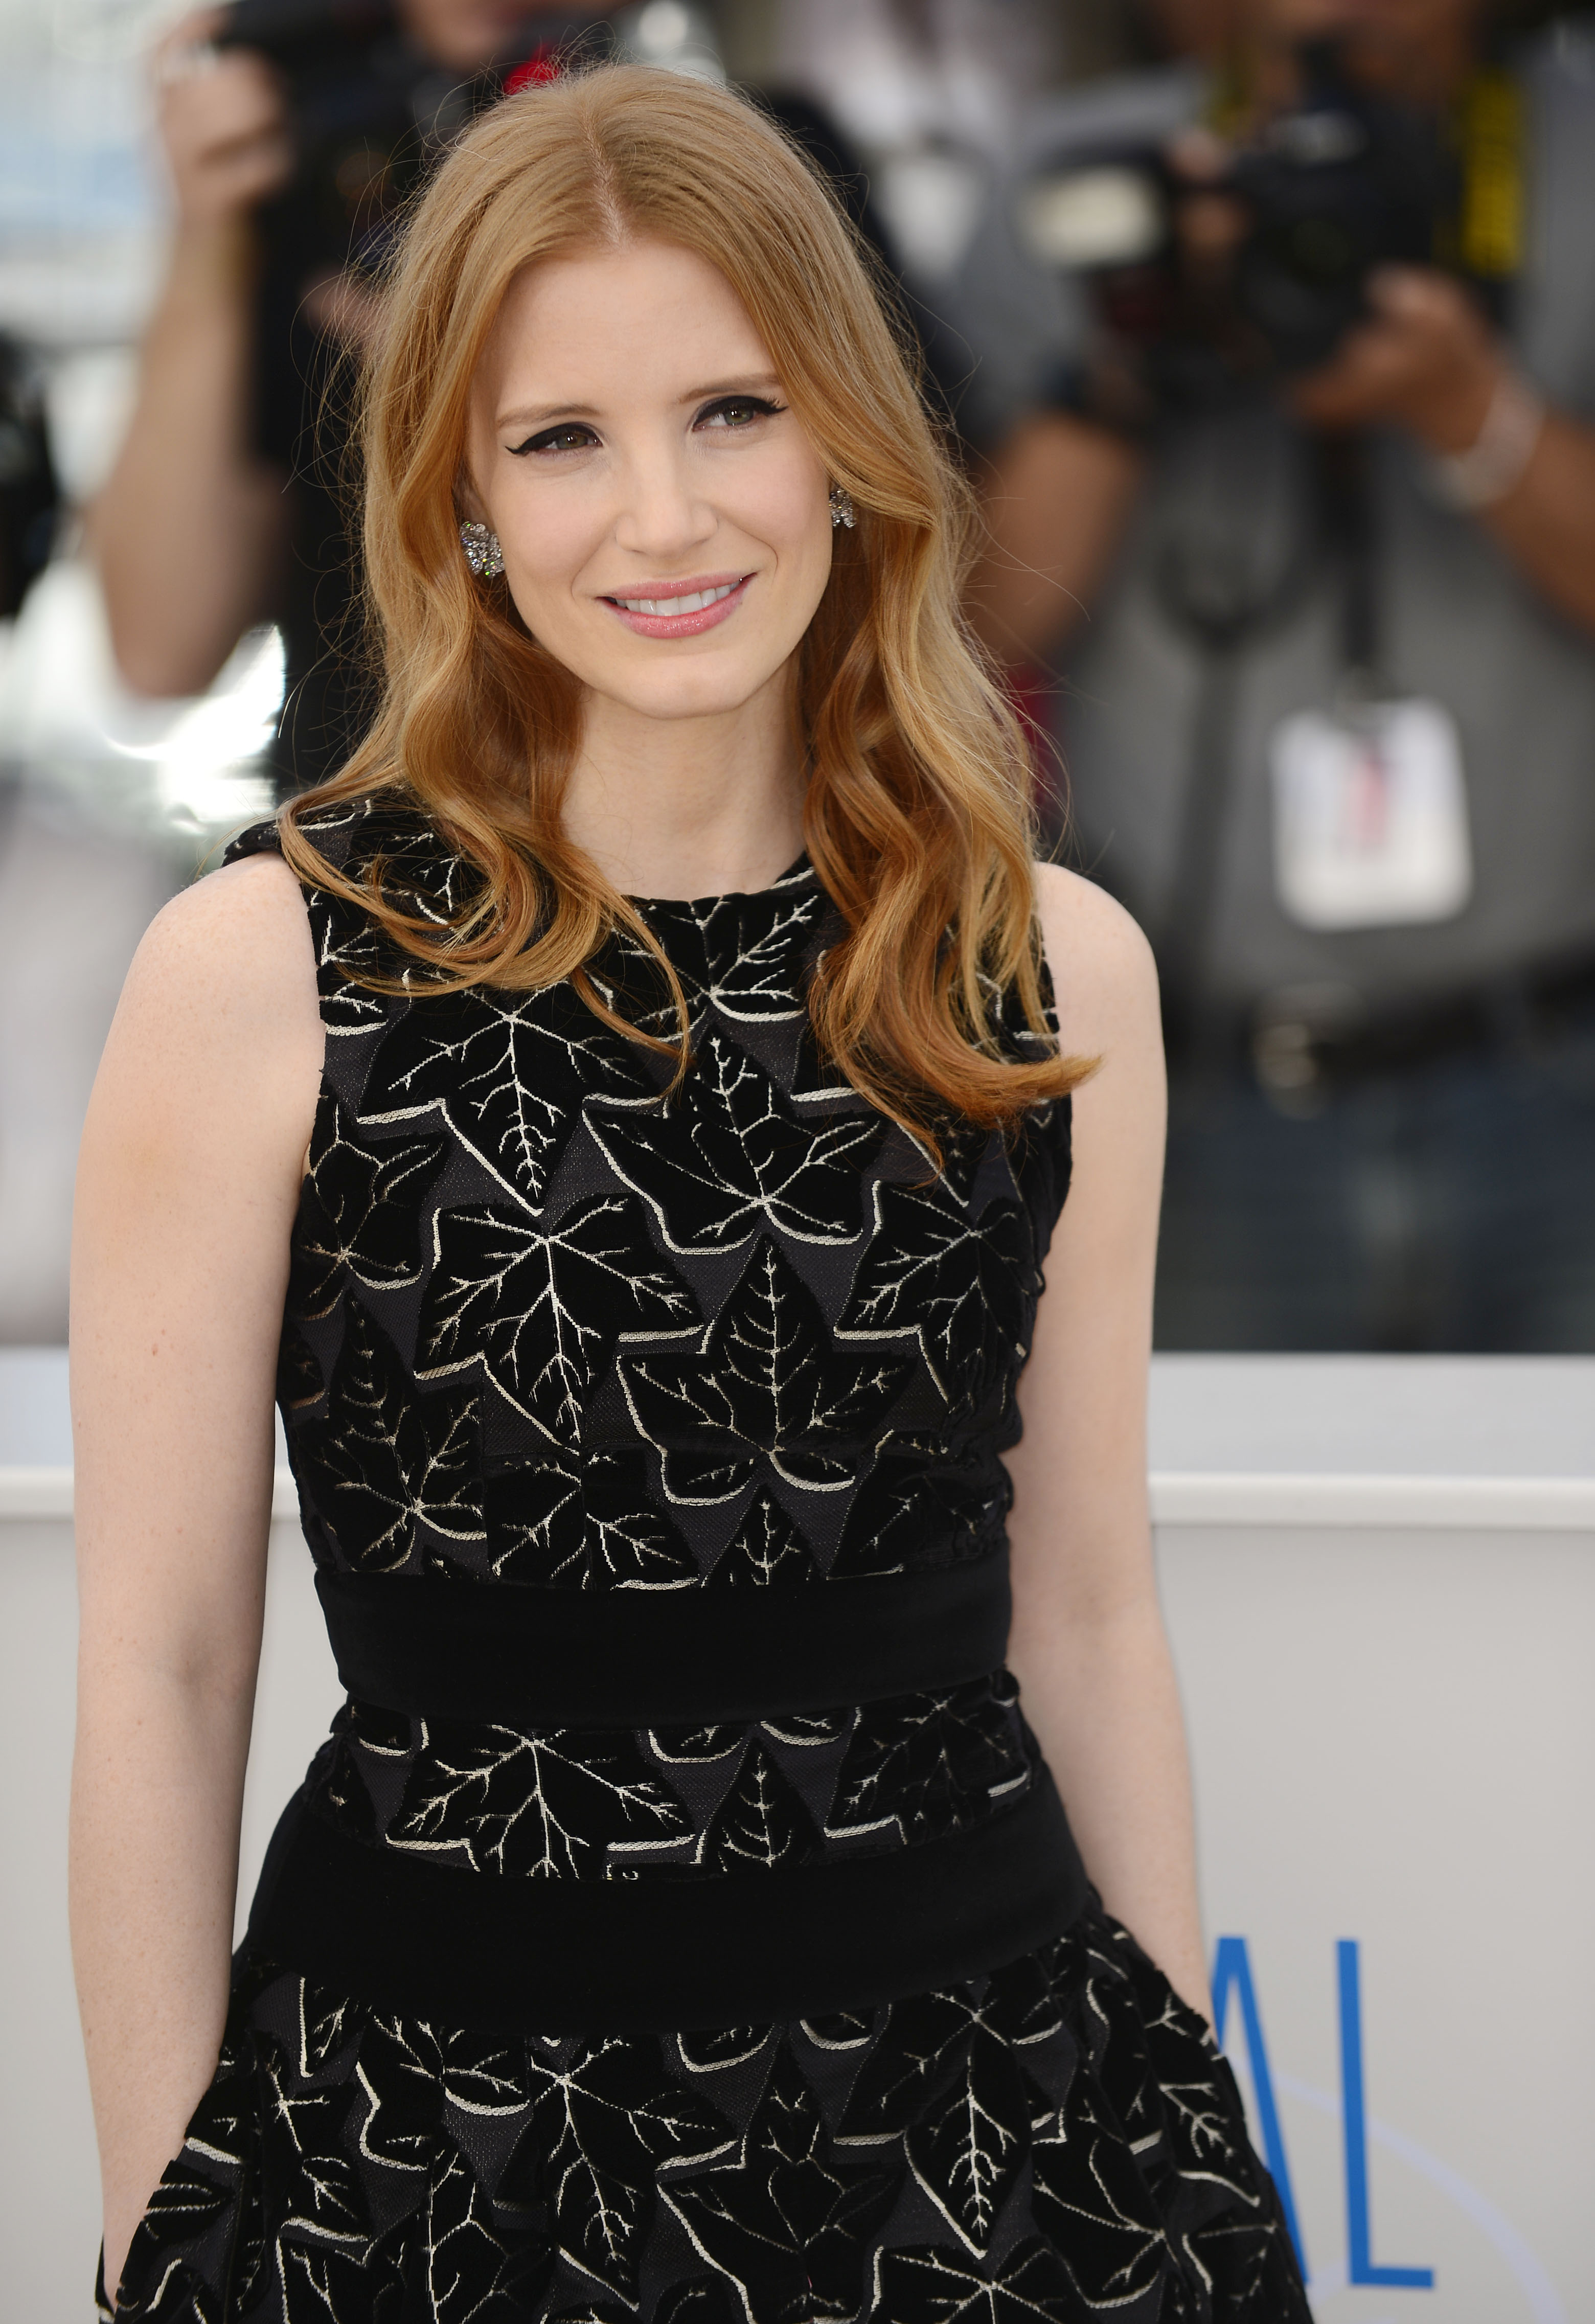 "(140518) -- CANNES, May 18, 2014 (Xinhua) -- U.S. actress Jessica Chastain poses during the photocall for ""The Disappearance of Eleanor Rigby"" at the 67th Cannes Film Festival in Cannes, France, May 18, 2014. The movie is presented in the section Un Certain Regard of the festival which runs from May 14 to 25. (Xinhua/Ye Pingfan) (djj)"